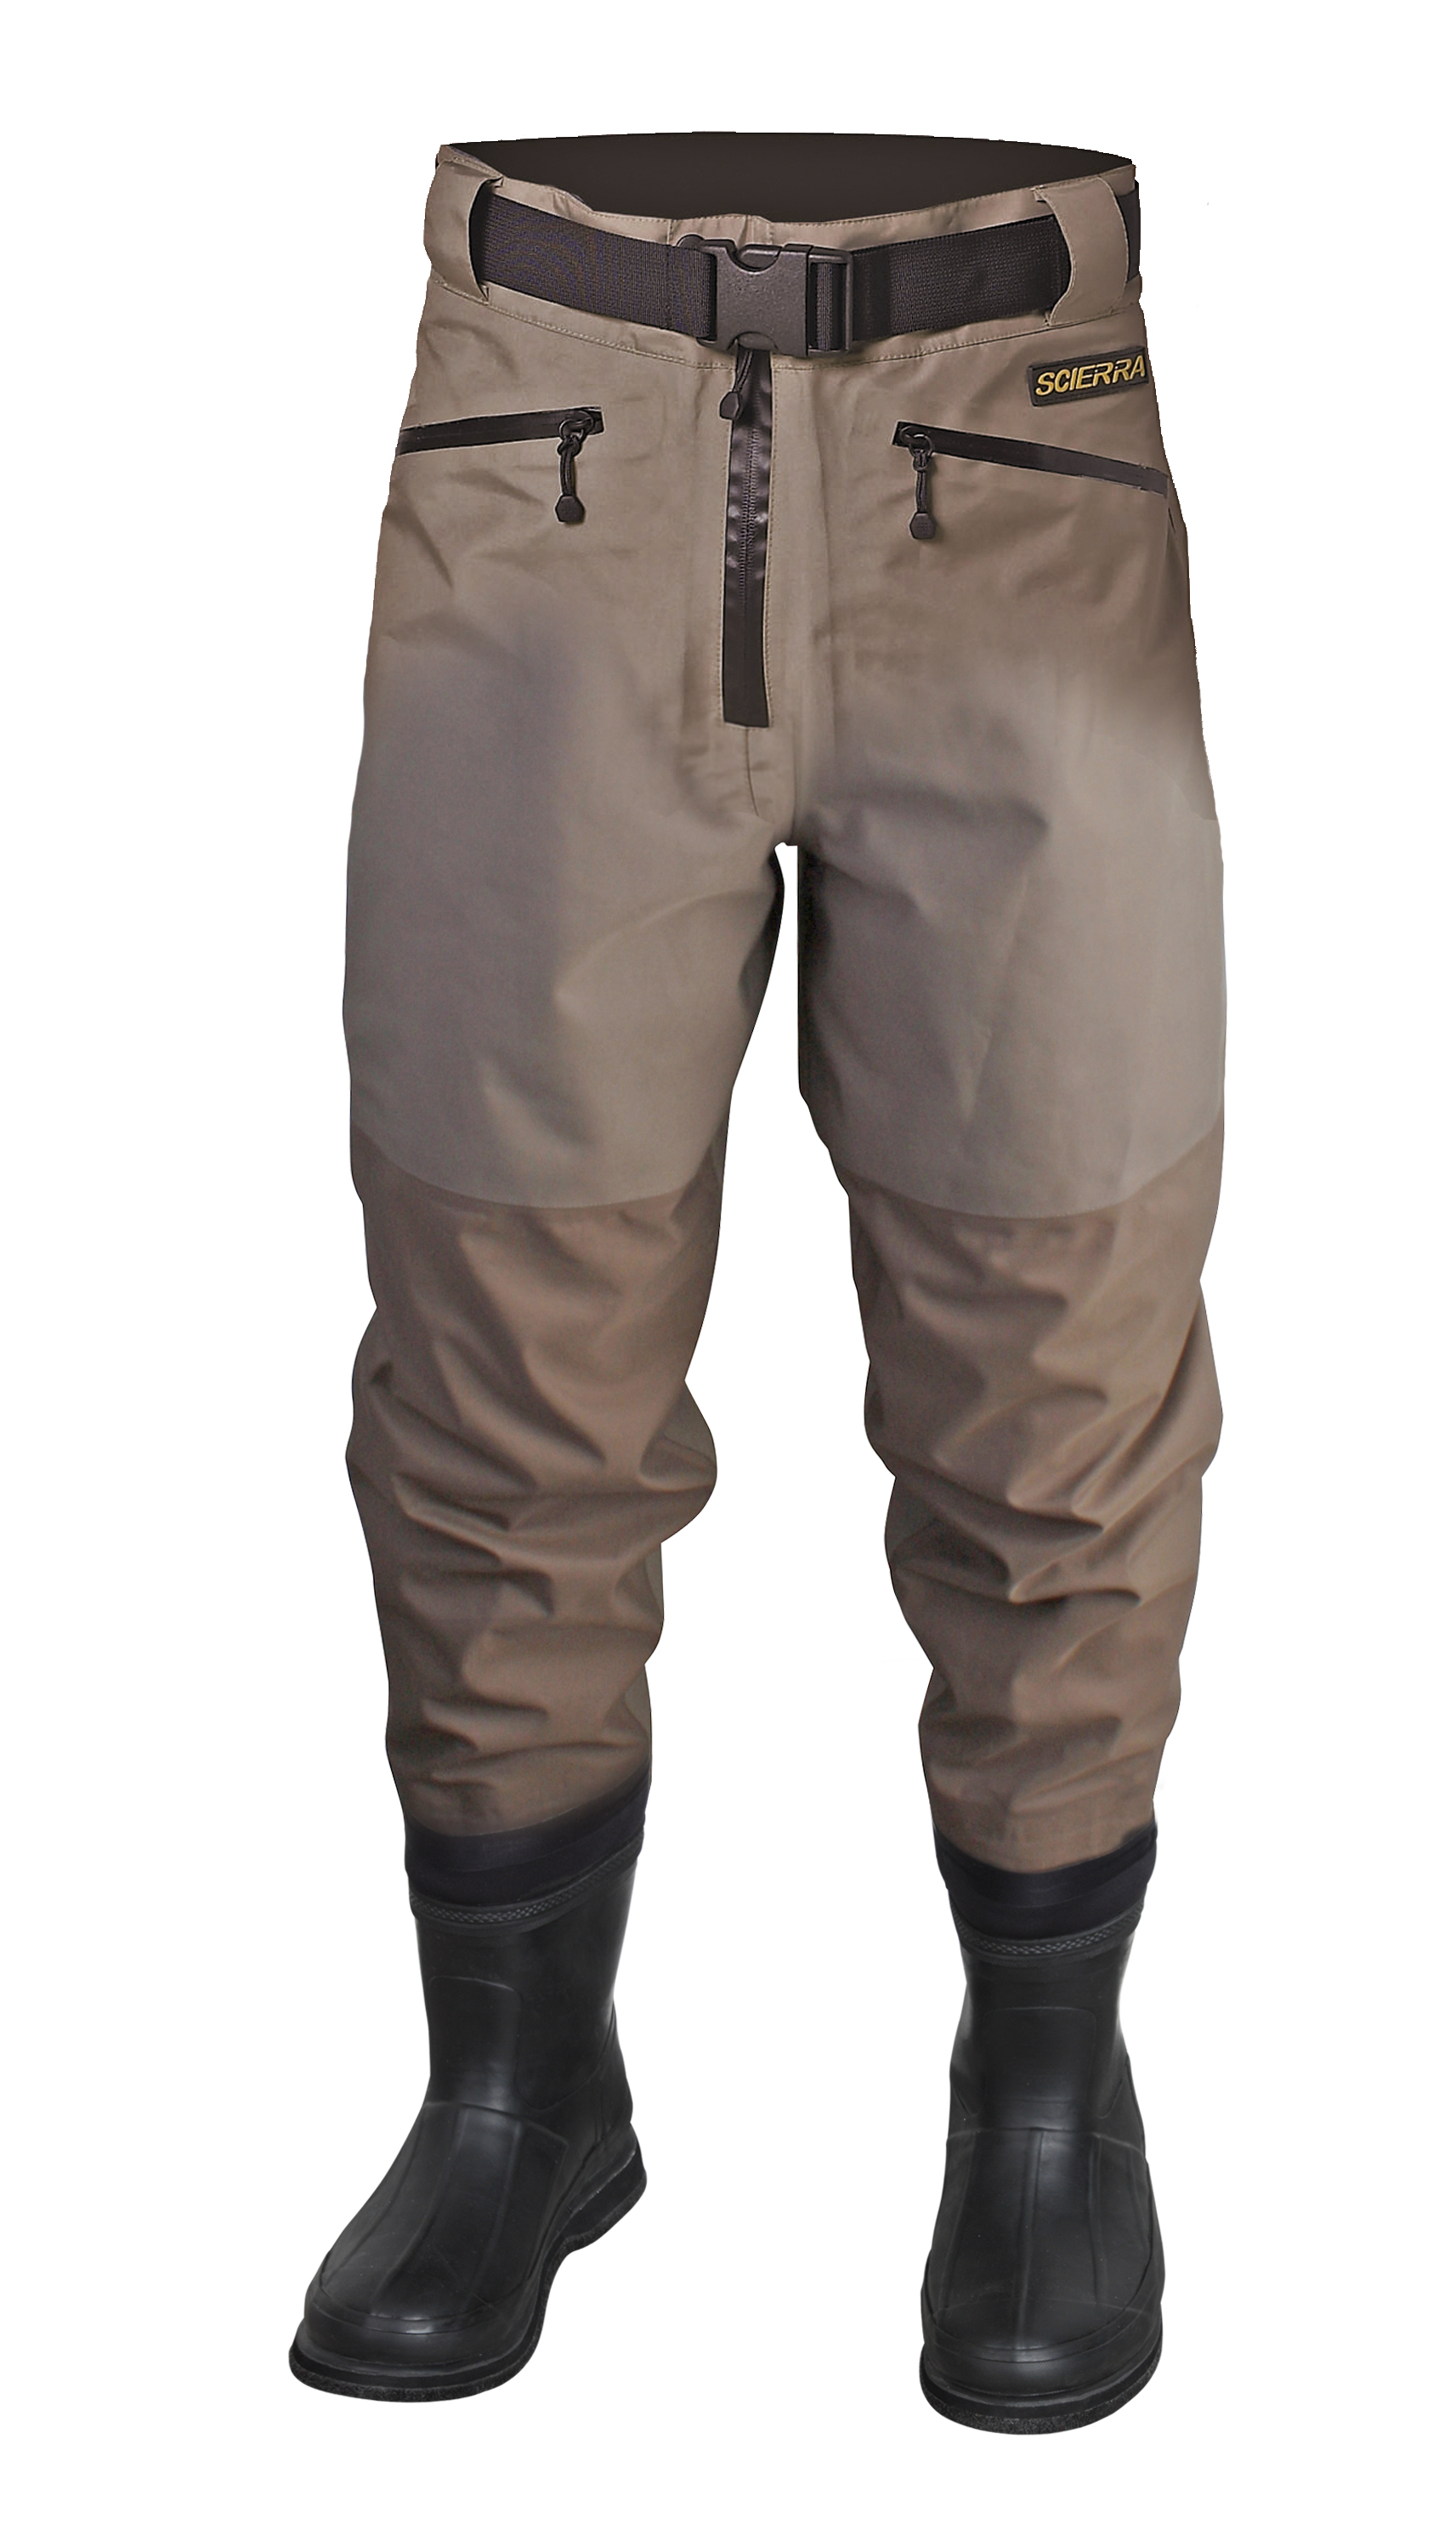 Scierra cc3 xp waist wader boot foot glasgow angling centre for Best fly fishing waders